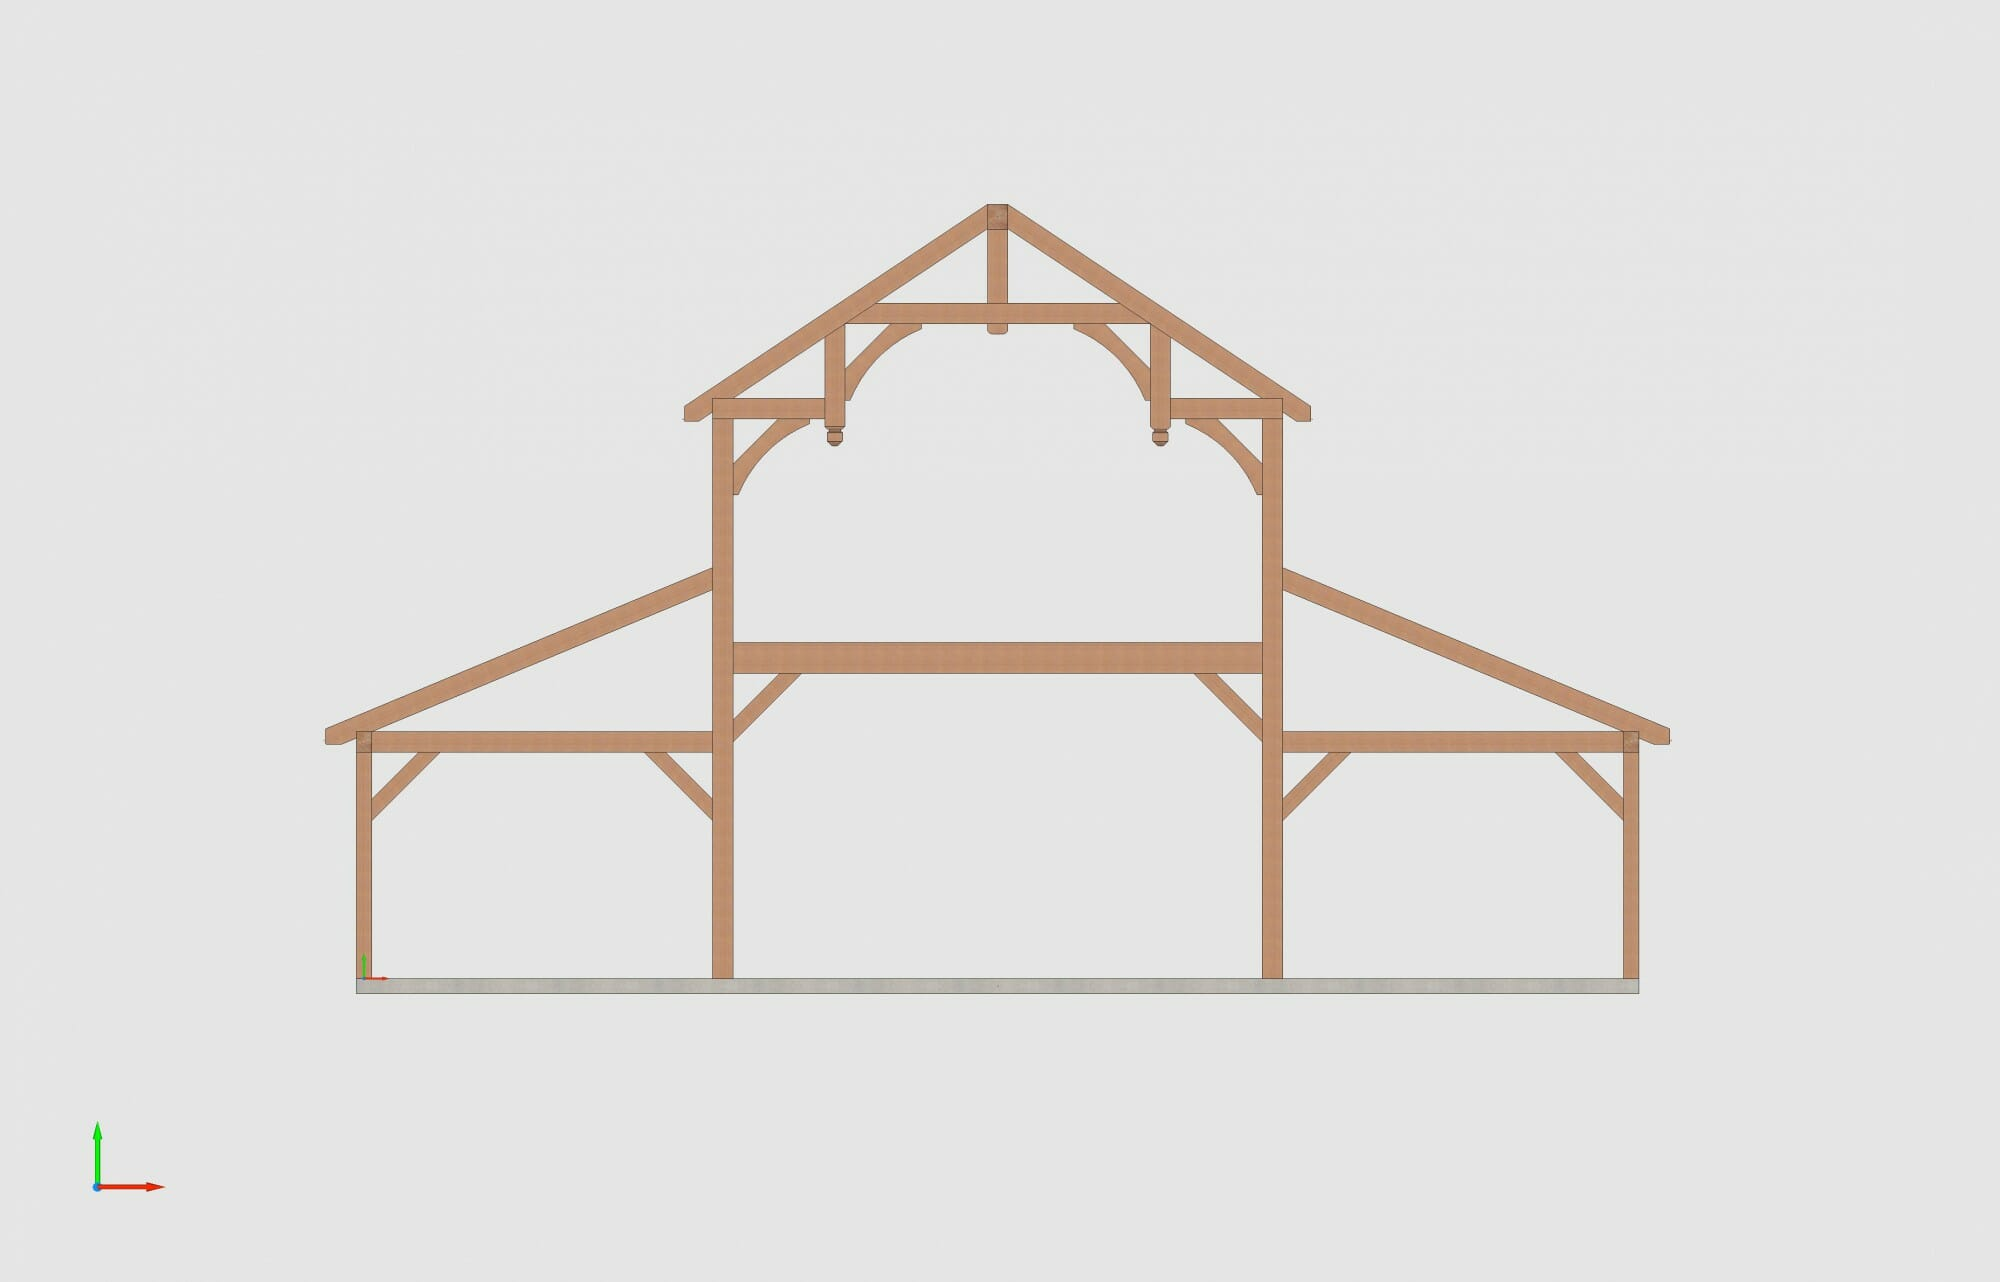 Timber Frame Design of a Fancy Barn